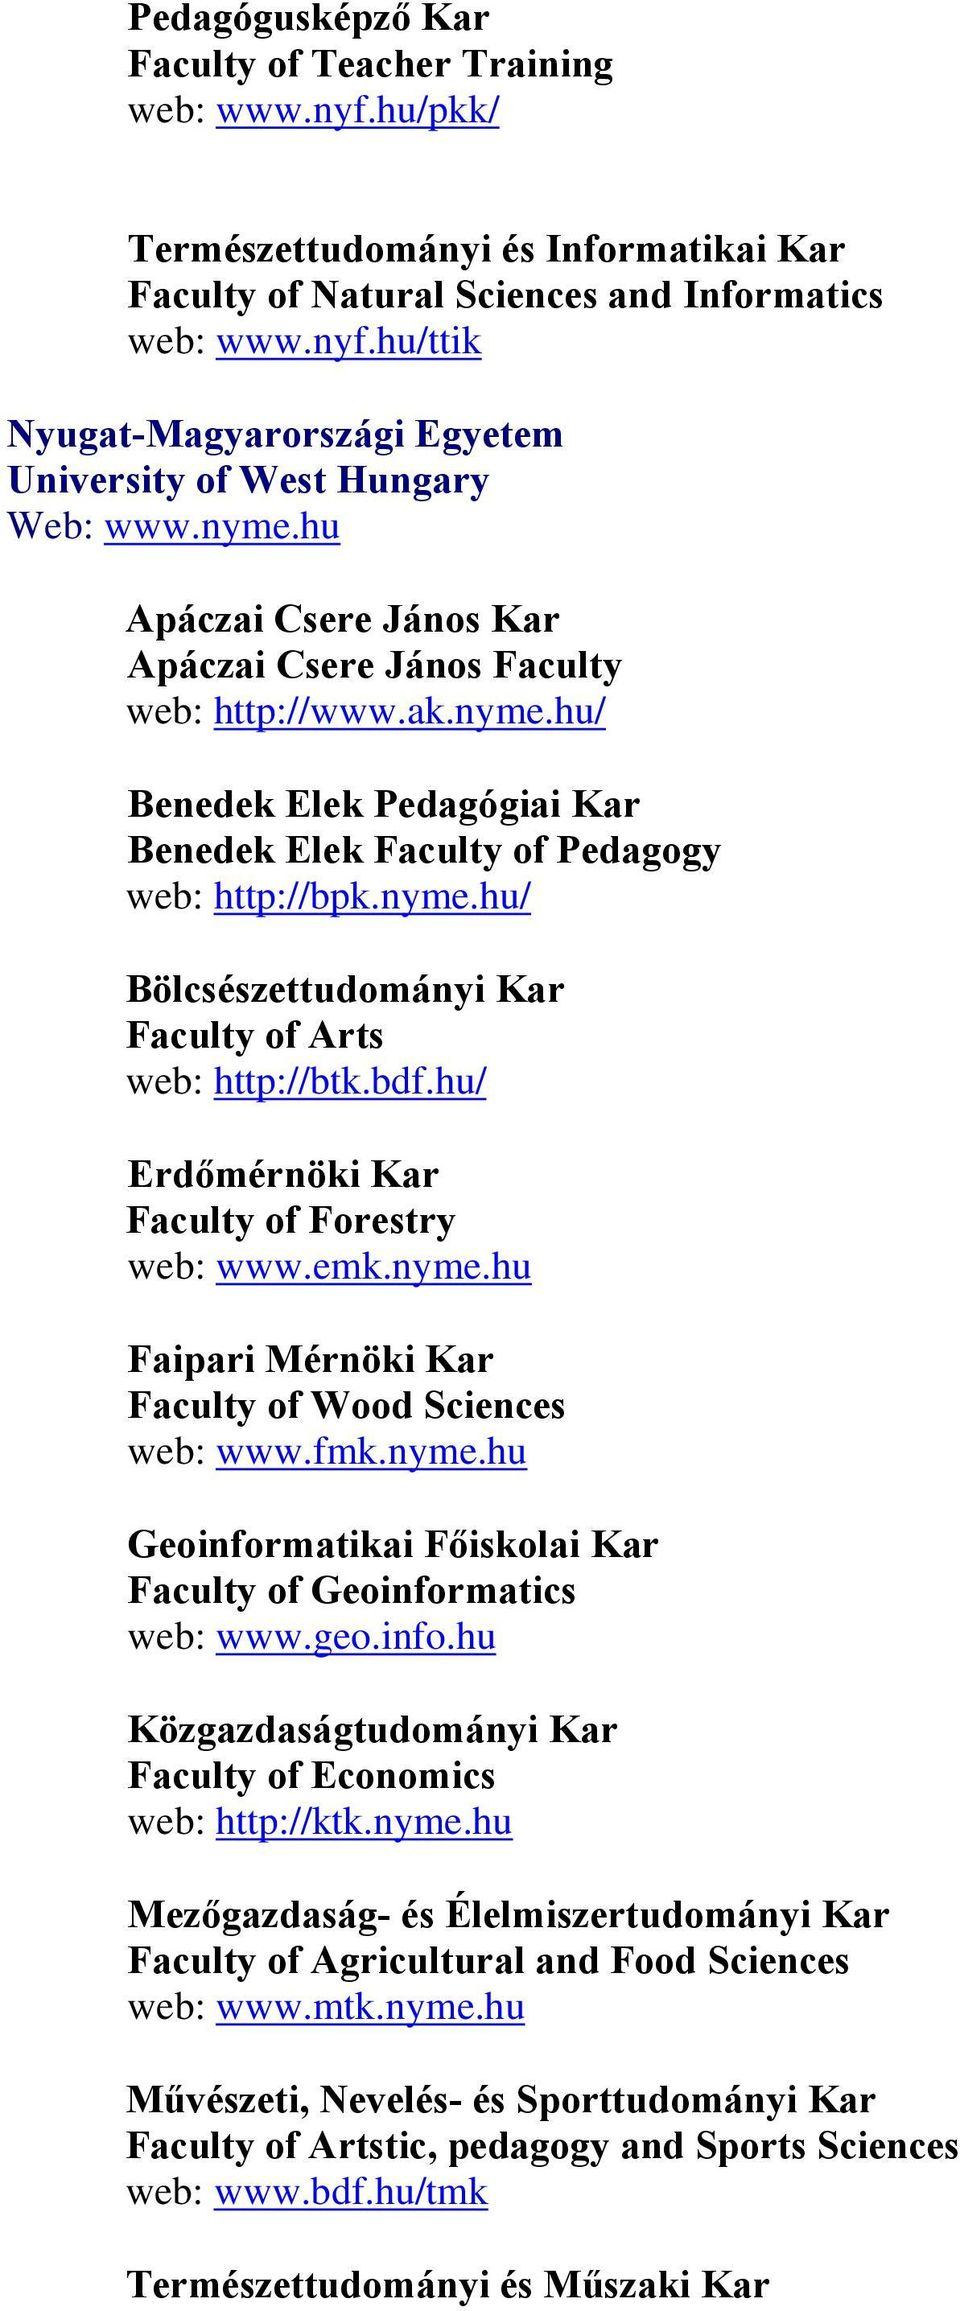 bdf.hu/ Erdőmérnöki Kar Faculty of Forestry web: www.emk.nyme.hu Faipari Mérnöki Kar Faculty of Wood Sciences web: www.fmk.nyme.hu Geoinformatikai Főiskolai Kar Faculty of Geoinformatics web: www.geo.